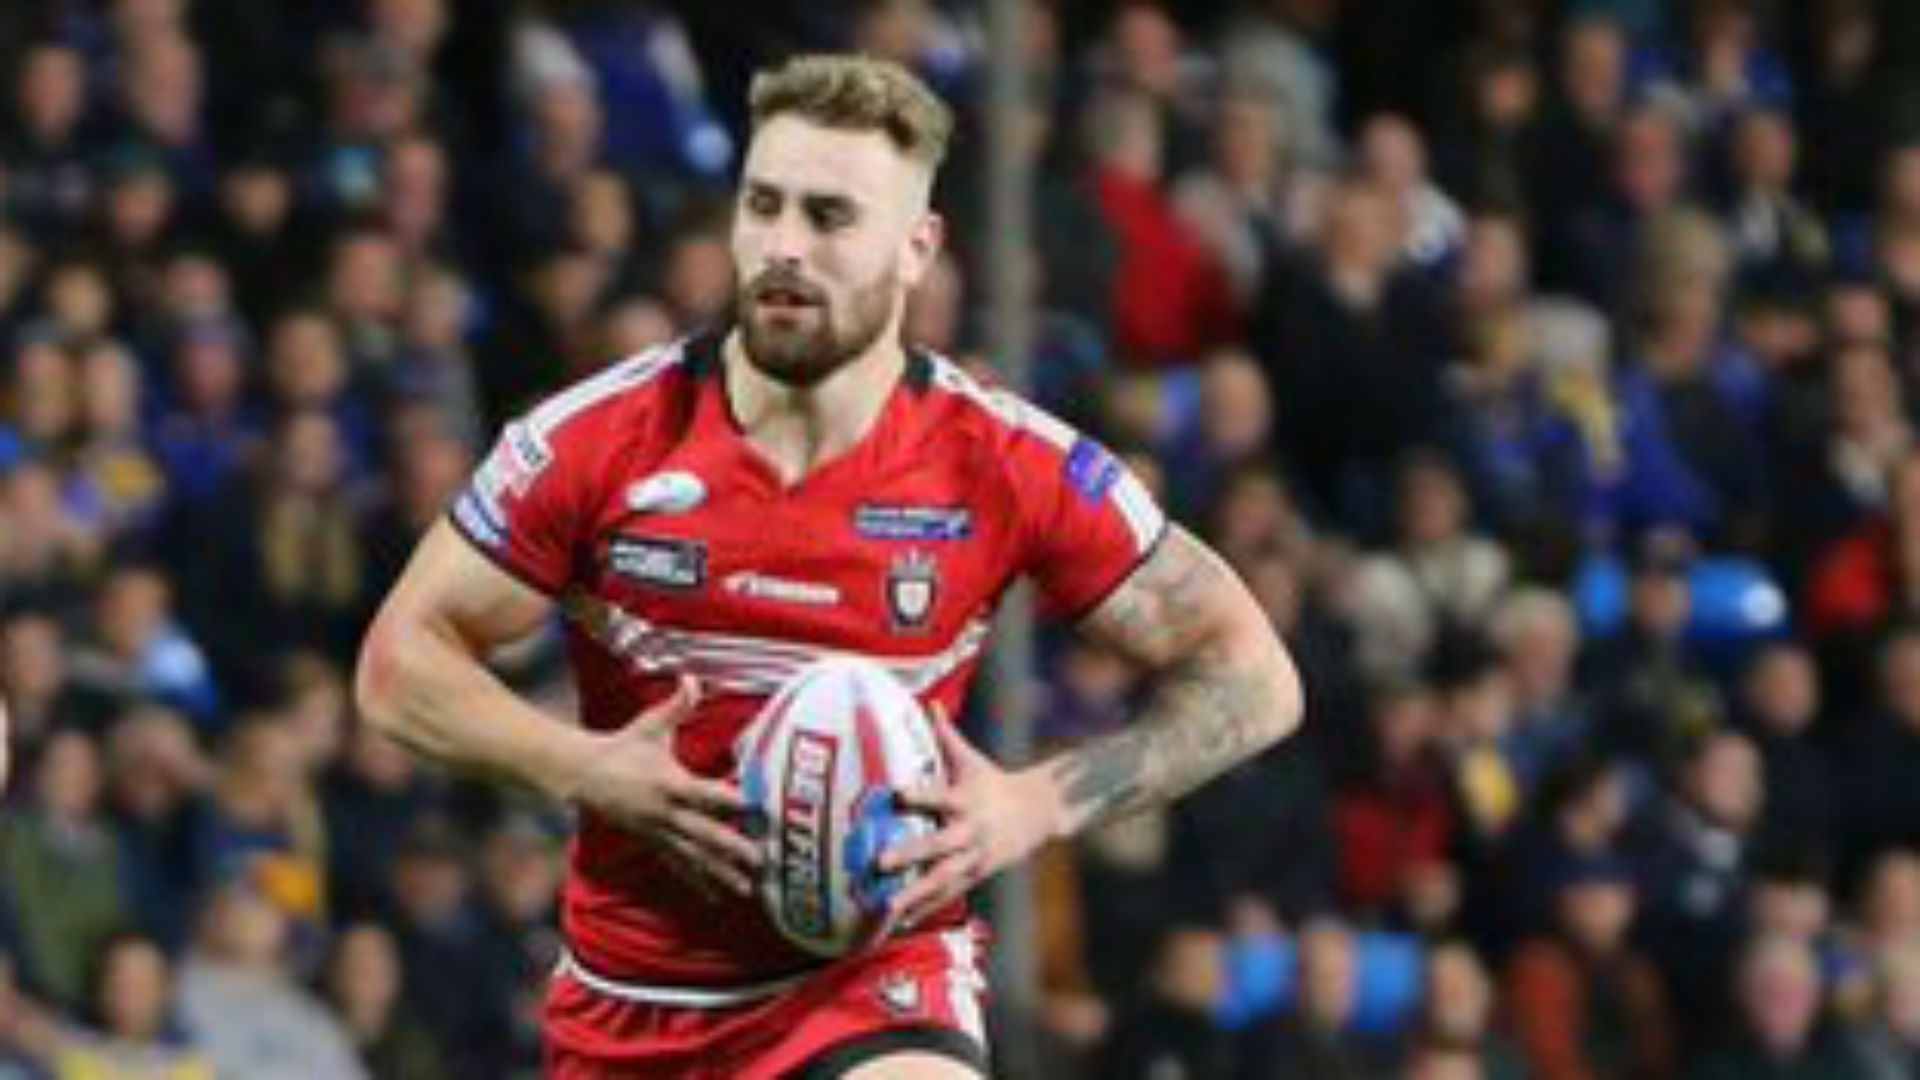 Salford Red Devils have confirmed former player Jansin Turgut is in hospital in Ibiza having reportedly sustained a head injury in a fall.